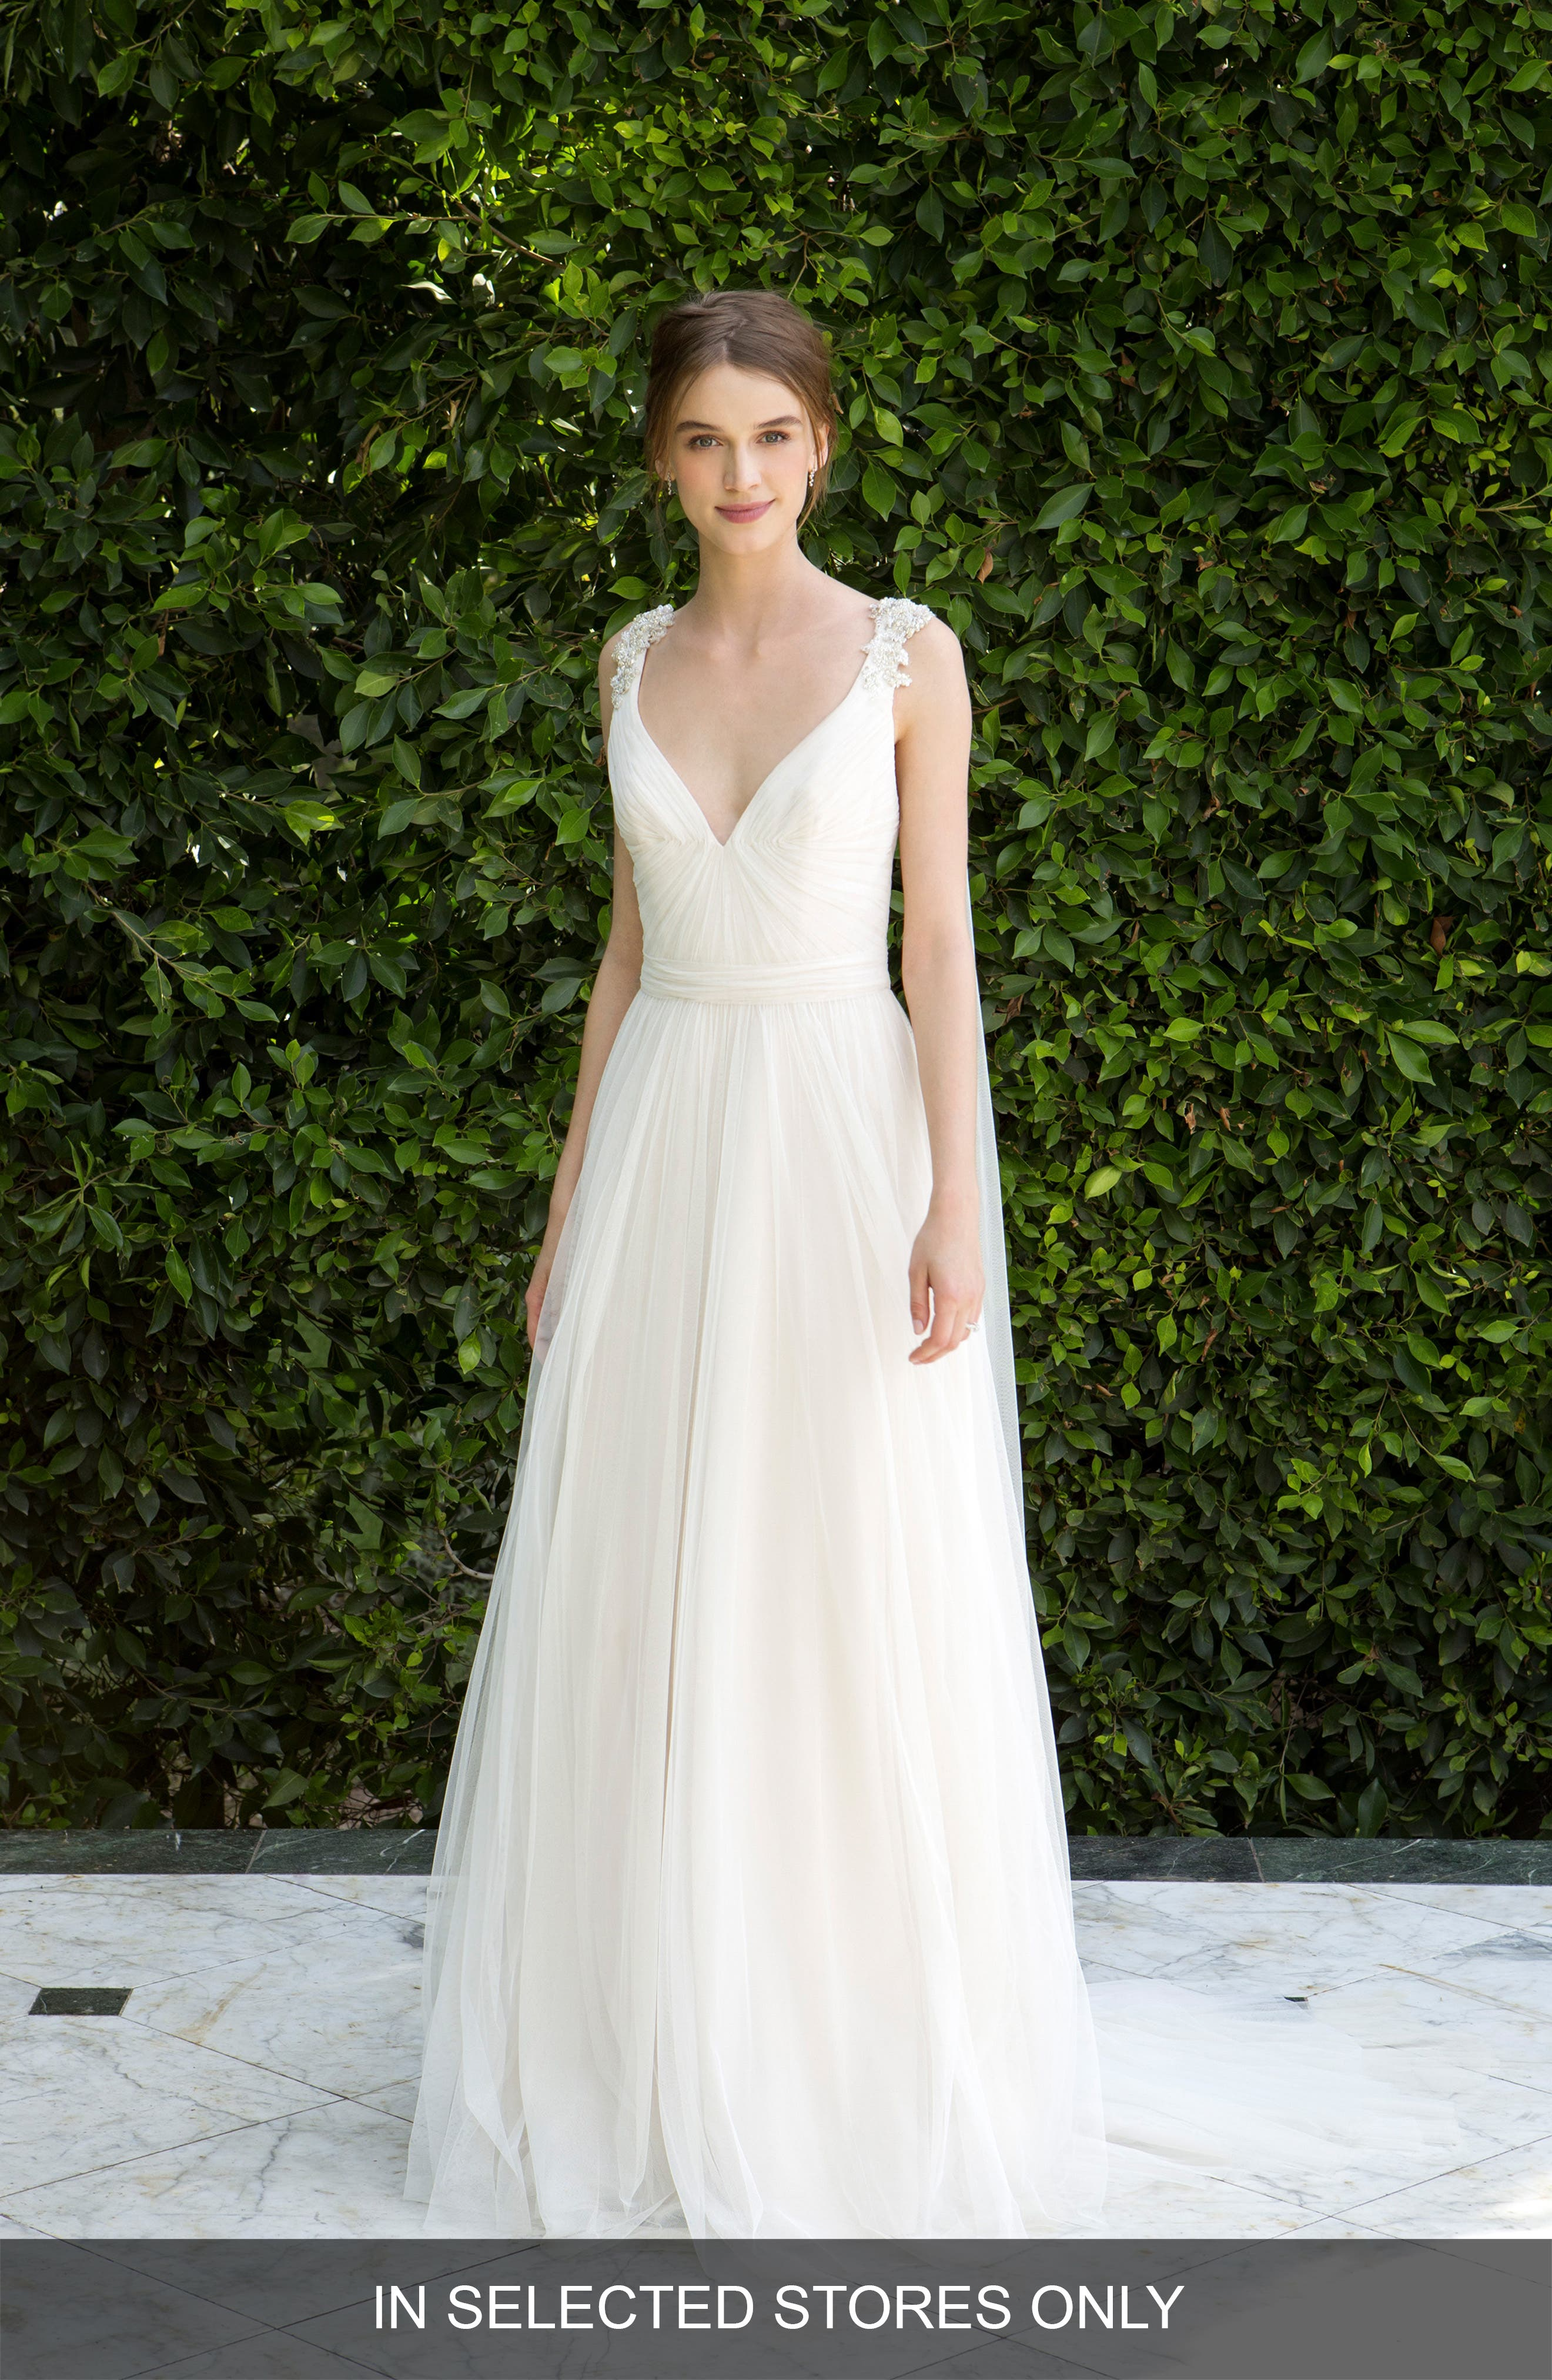 Beaded Soft Tulle Dress with Tails,                         Main,                         color, Silk White/Pearl